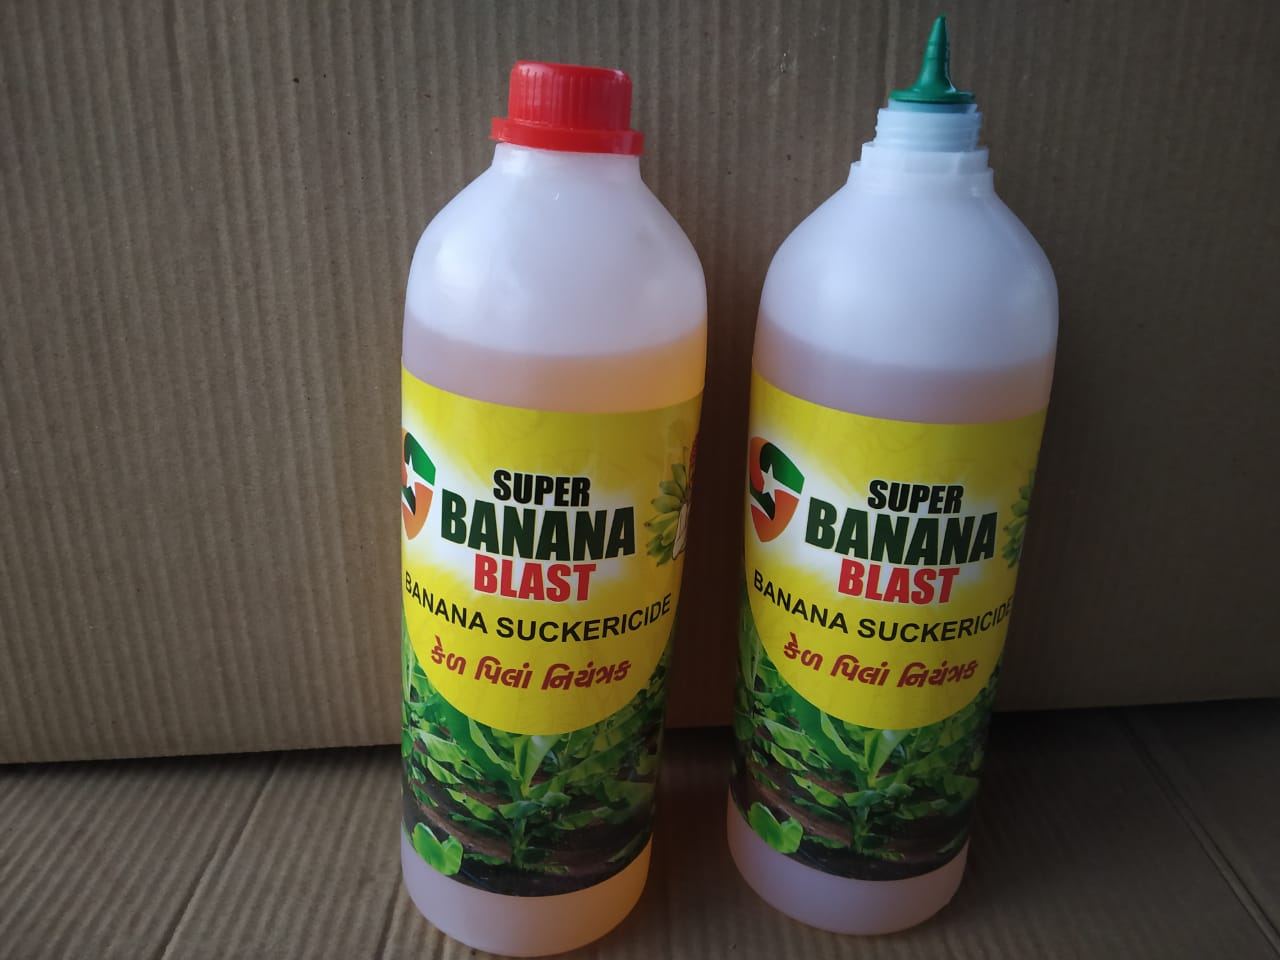 Super Banana Blast Suckericide